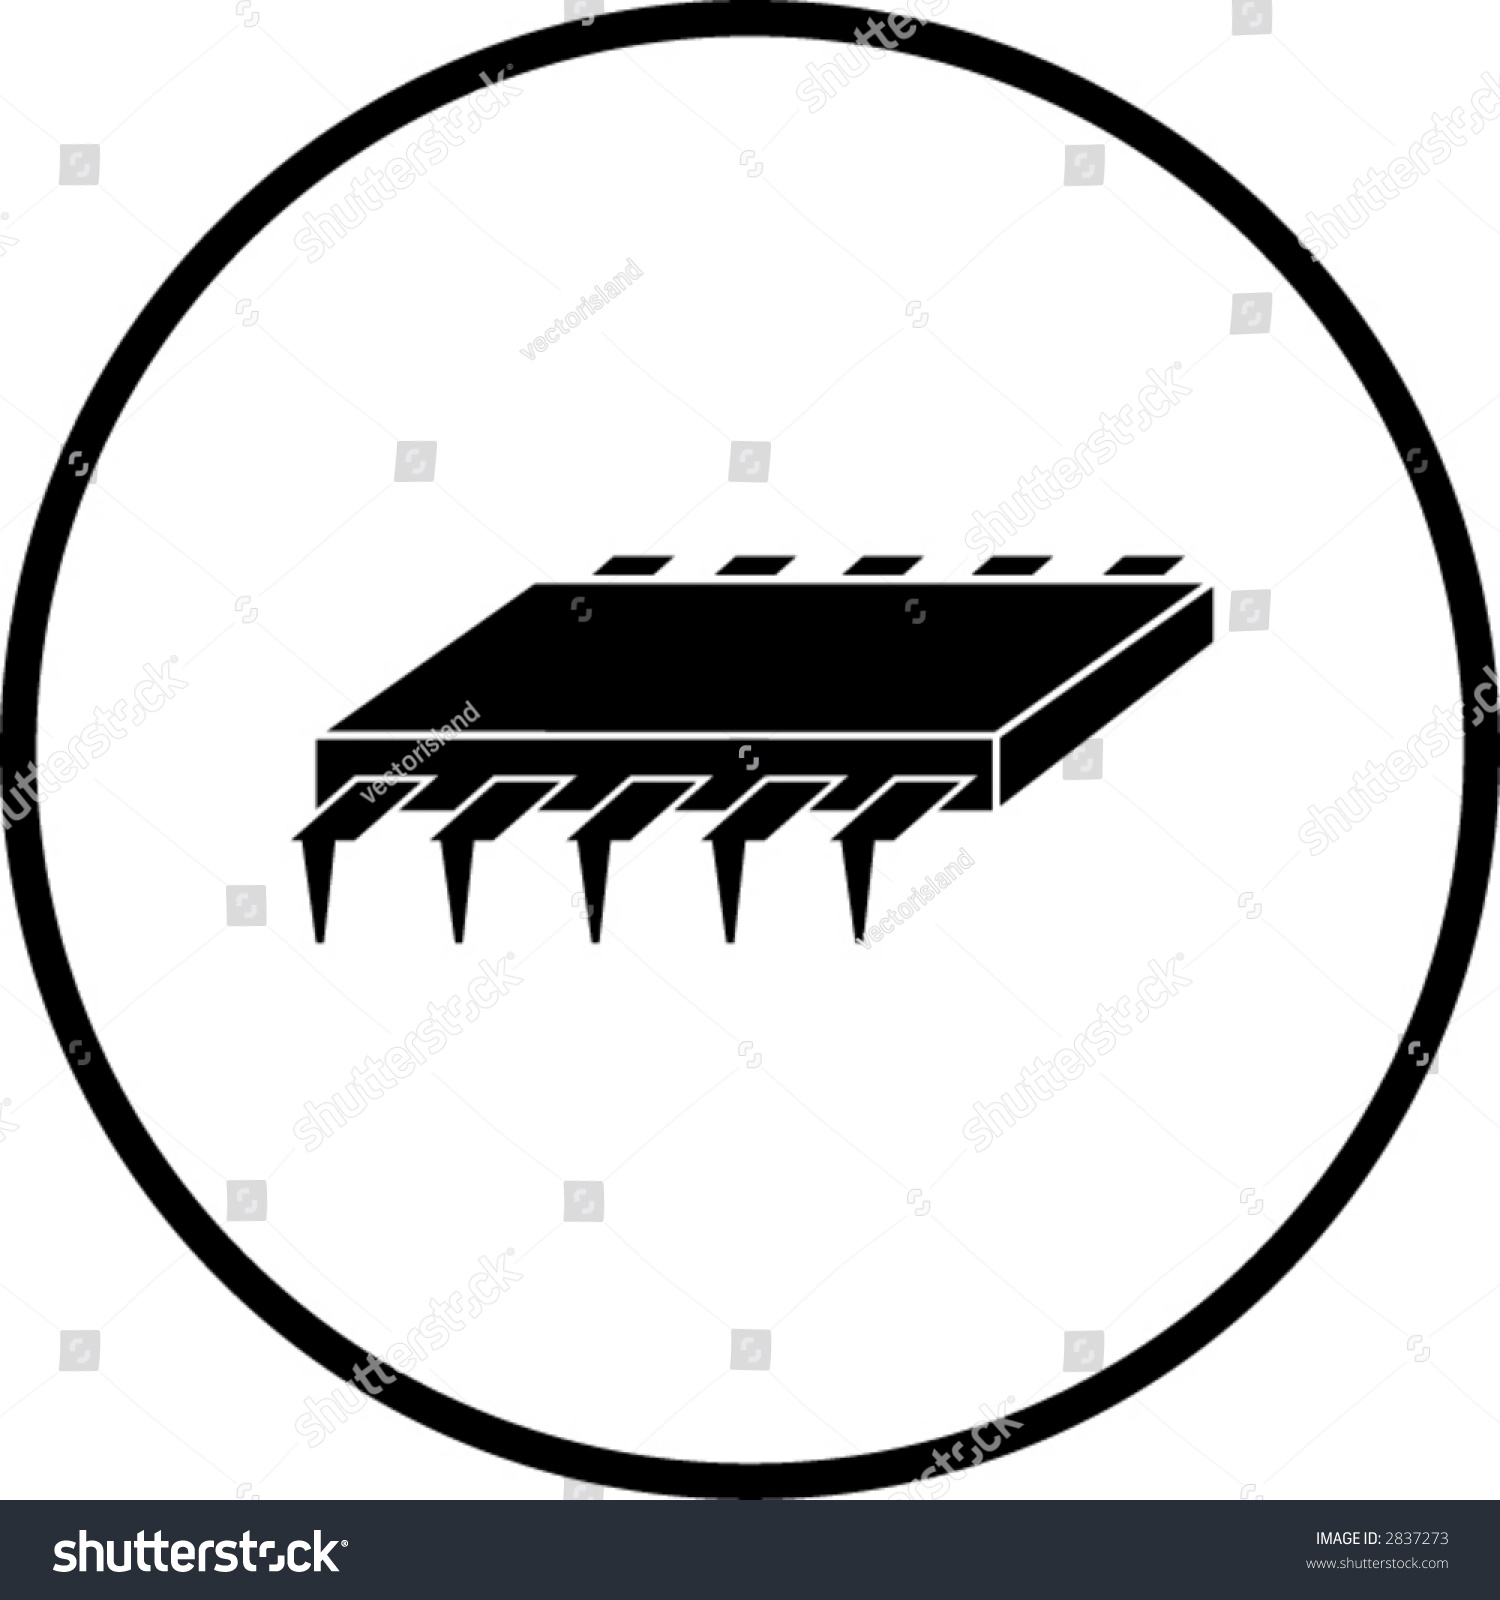 Integrated Circuit Symbol Stock Vector Royalty Free 2837273